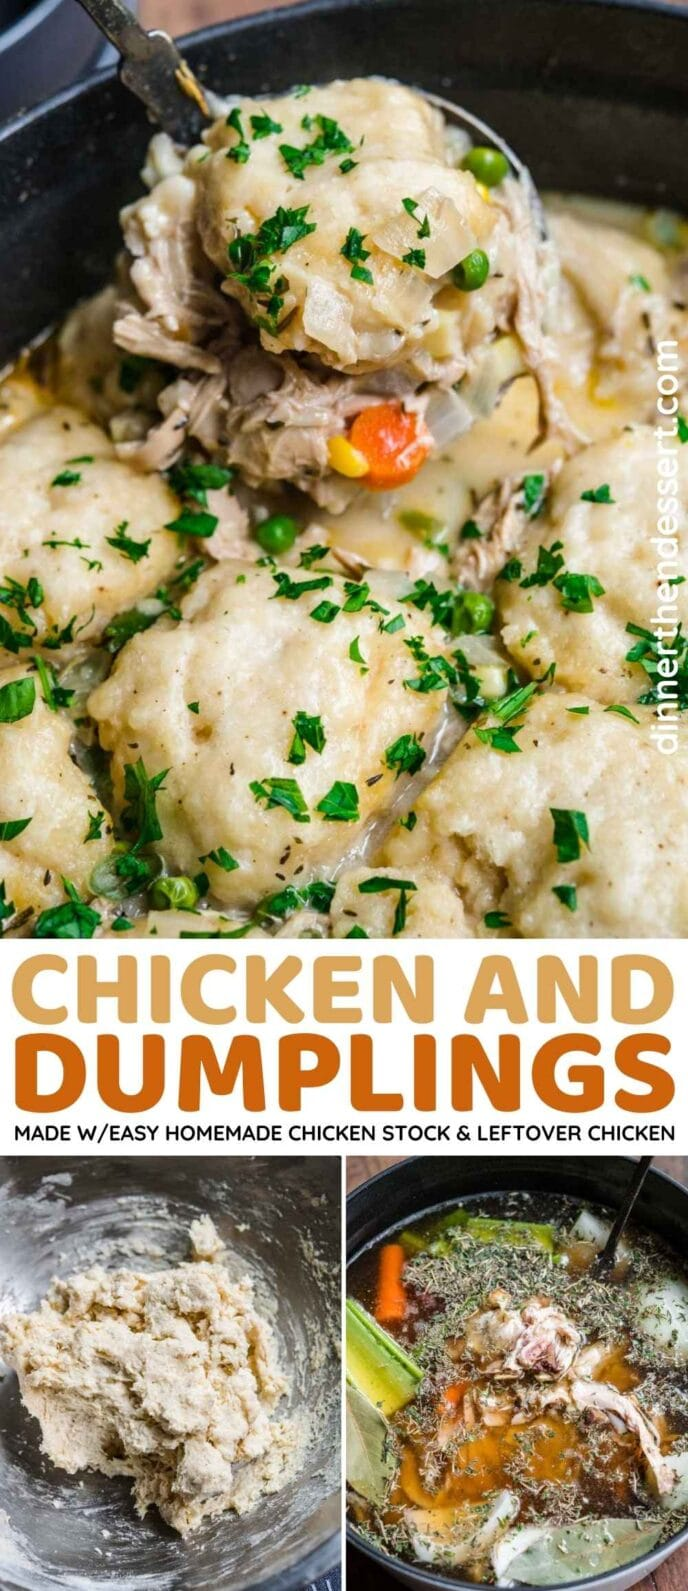 Chicken and Dumplings Collage